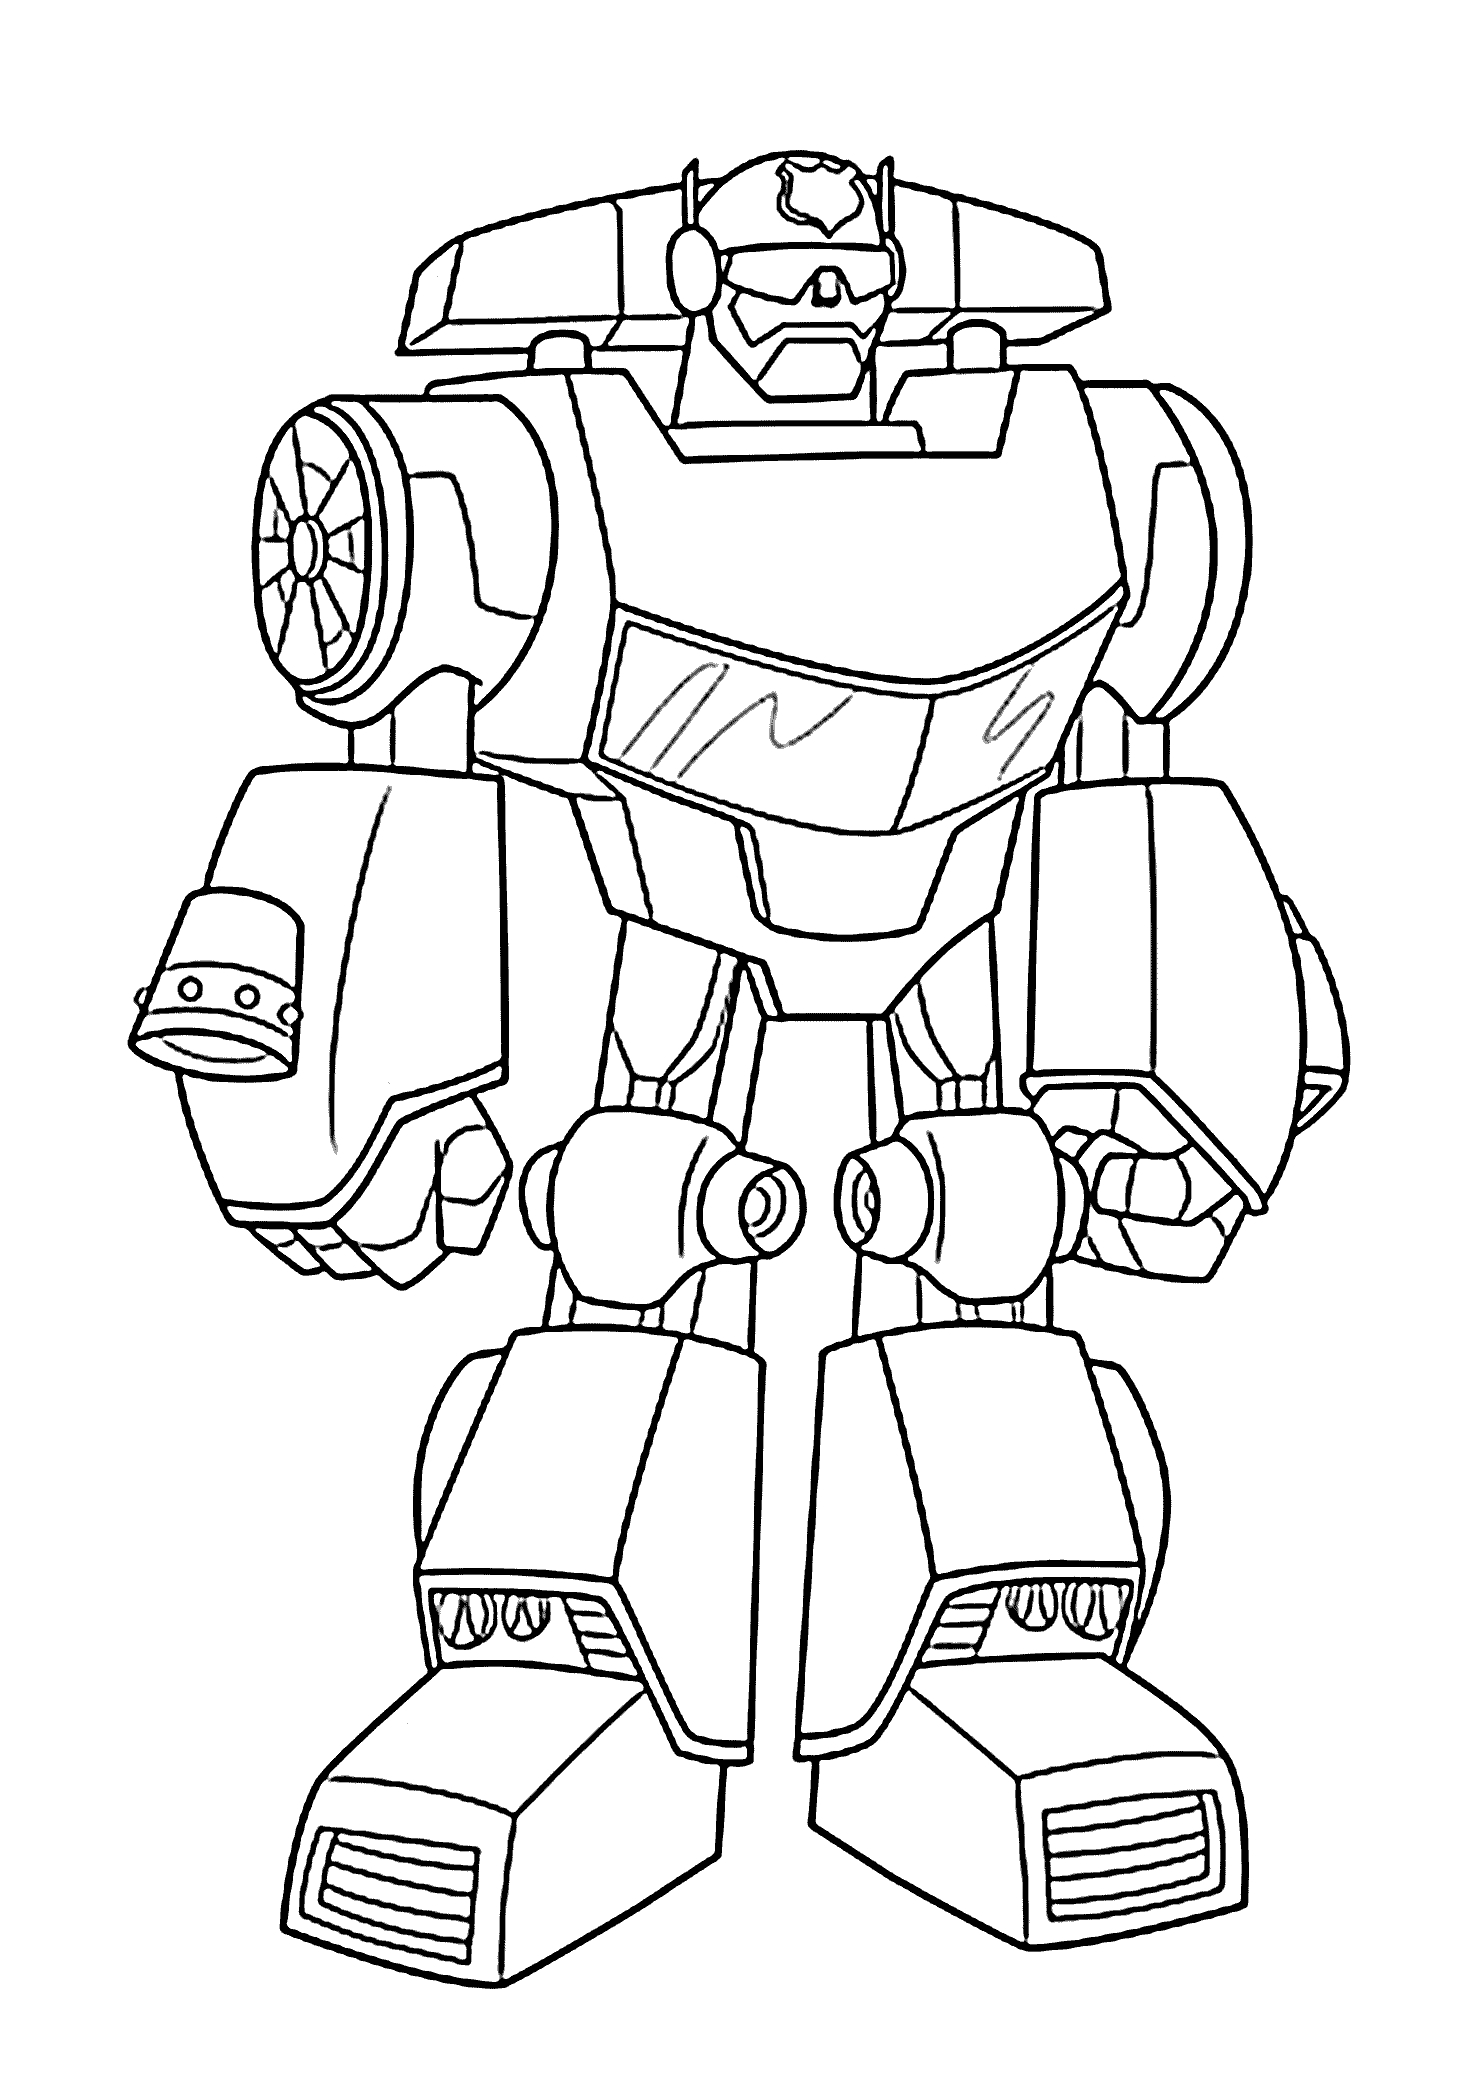 1483x2079 Best Of Damn It Boy Coloring Pages Design Free Coloring Pages